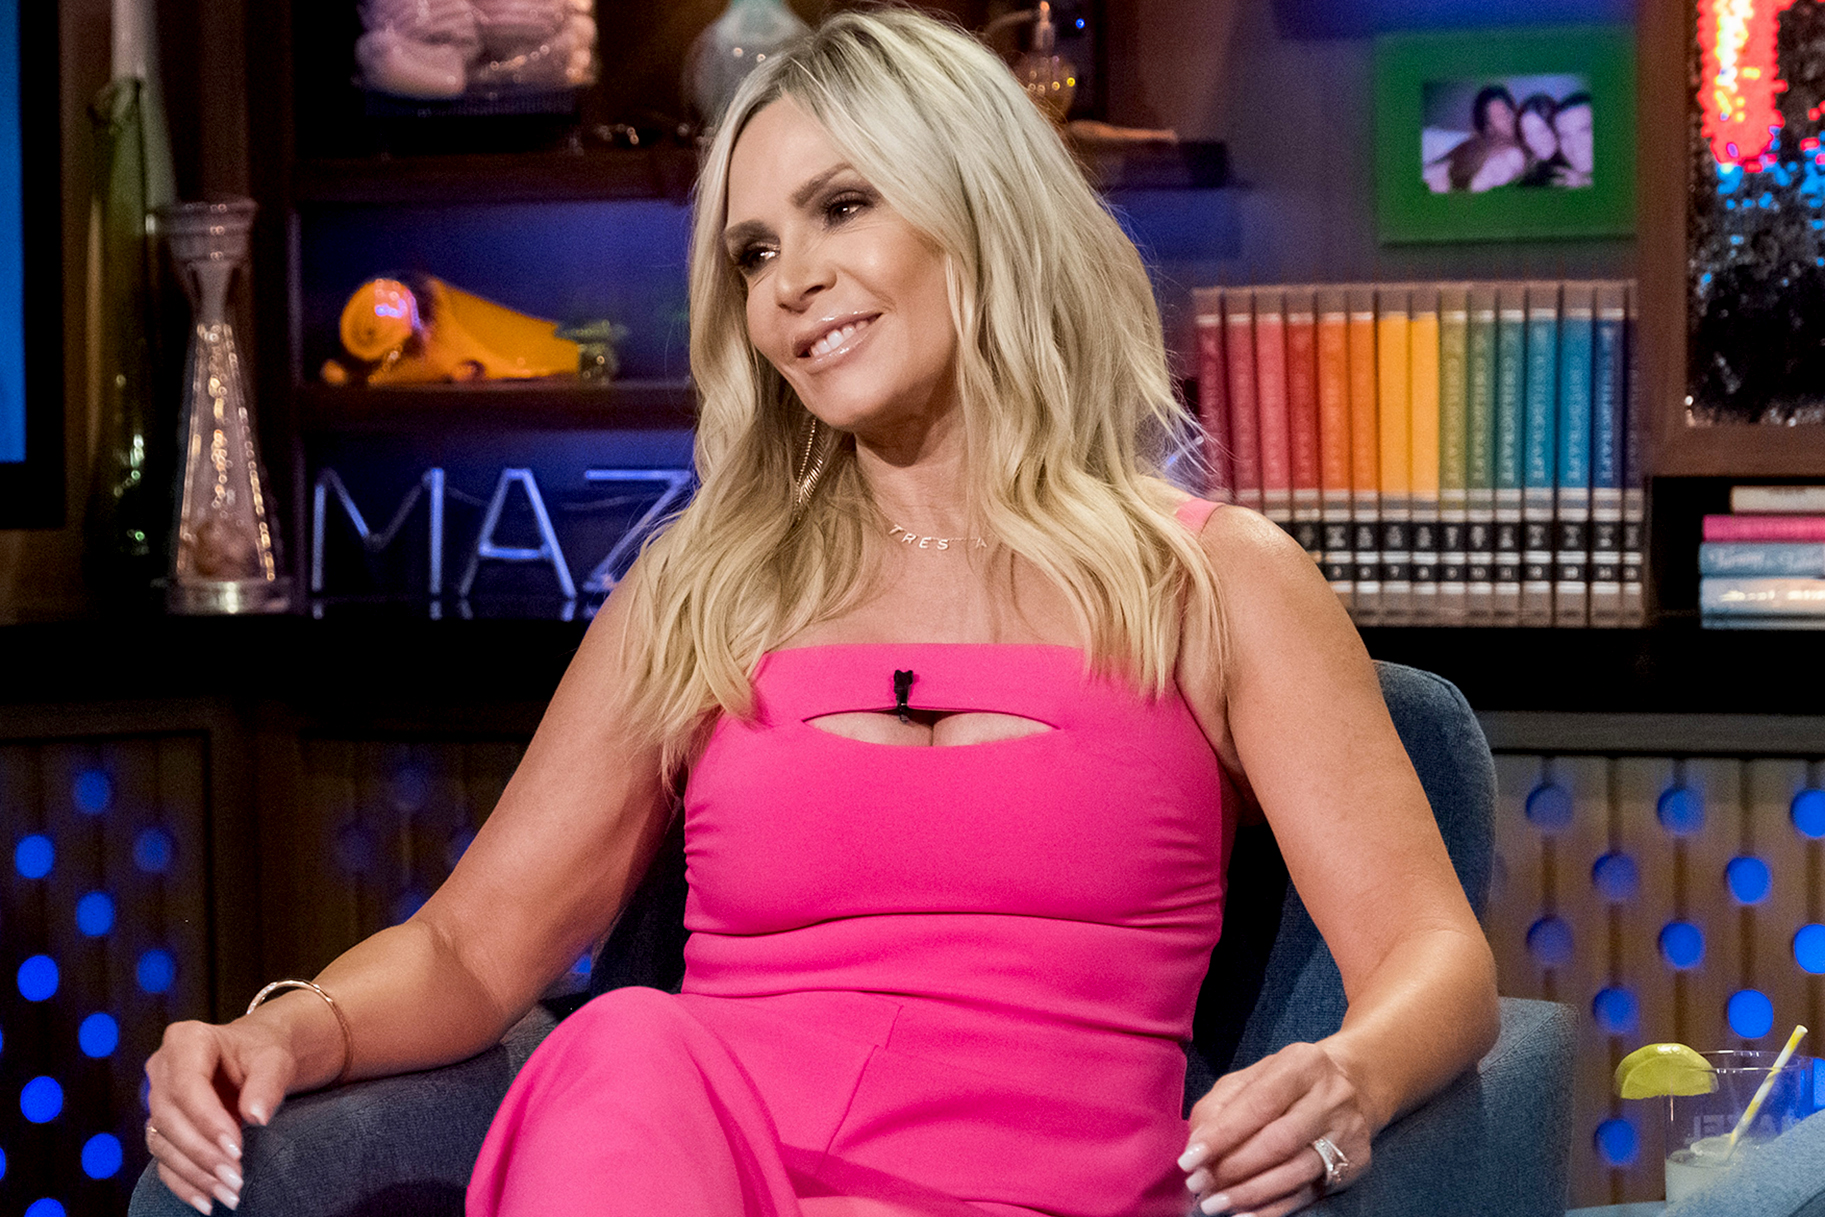 tamra-judge-hater-calls-her-out-for-disingenuous-lgbtq-support-post-and-she-claps-back